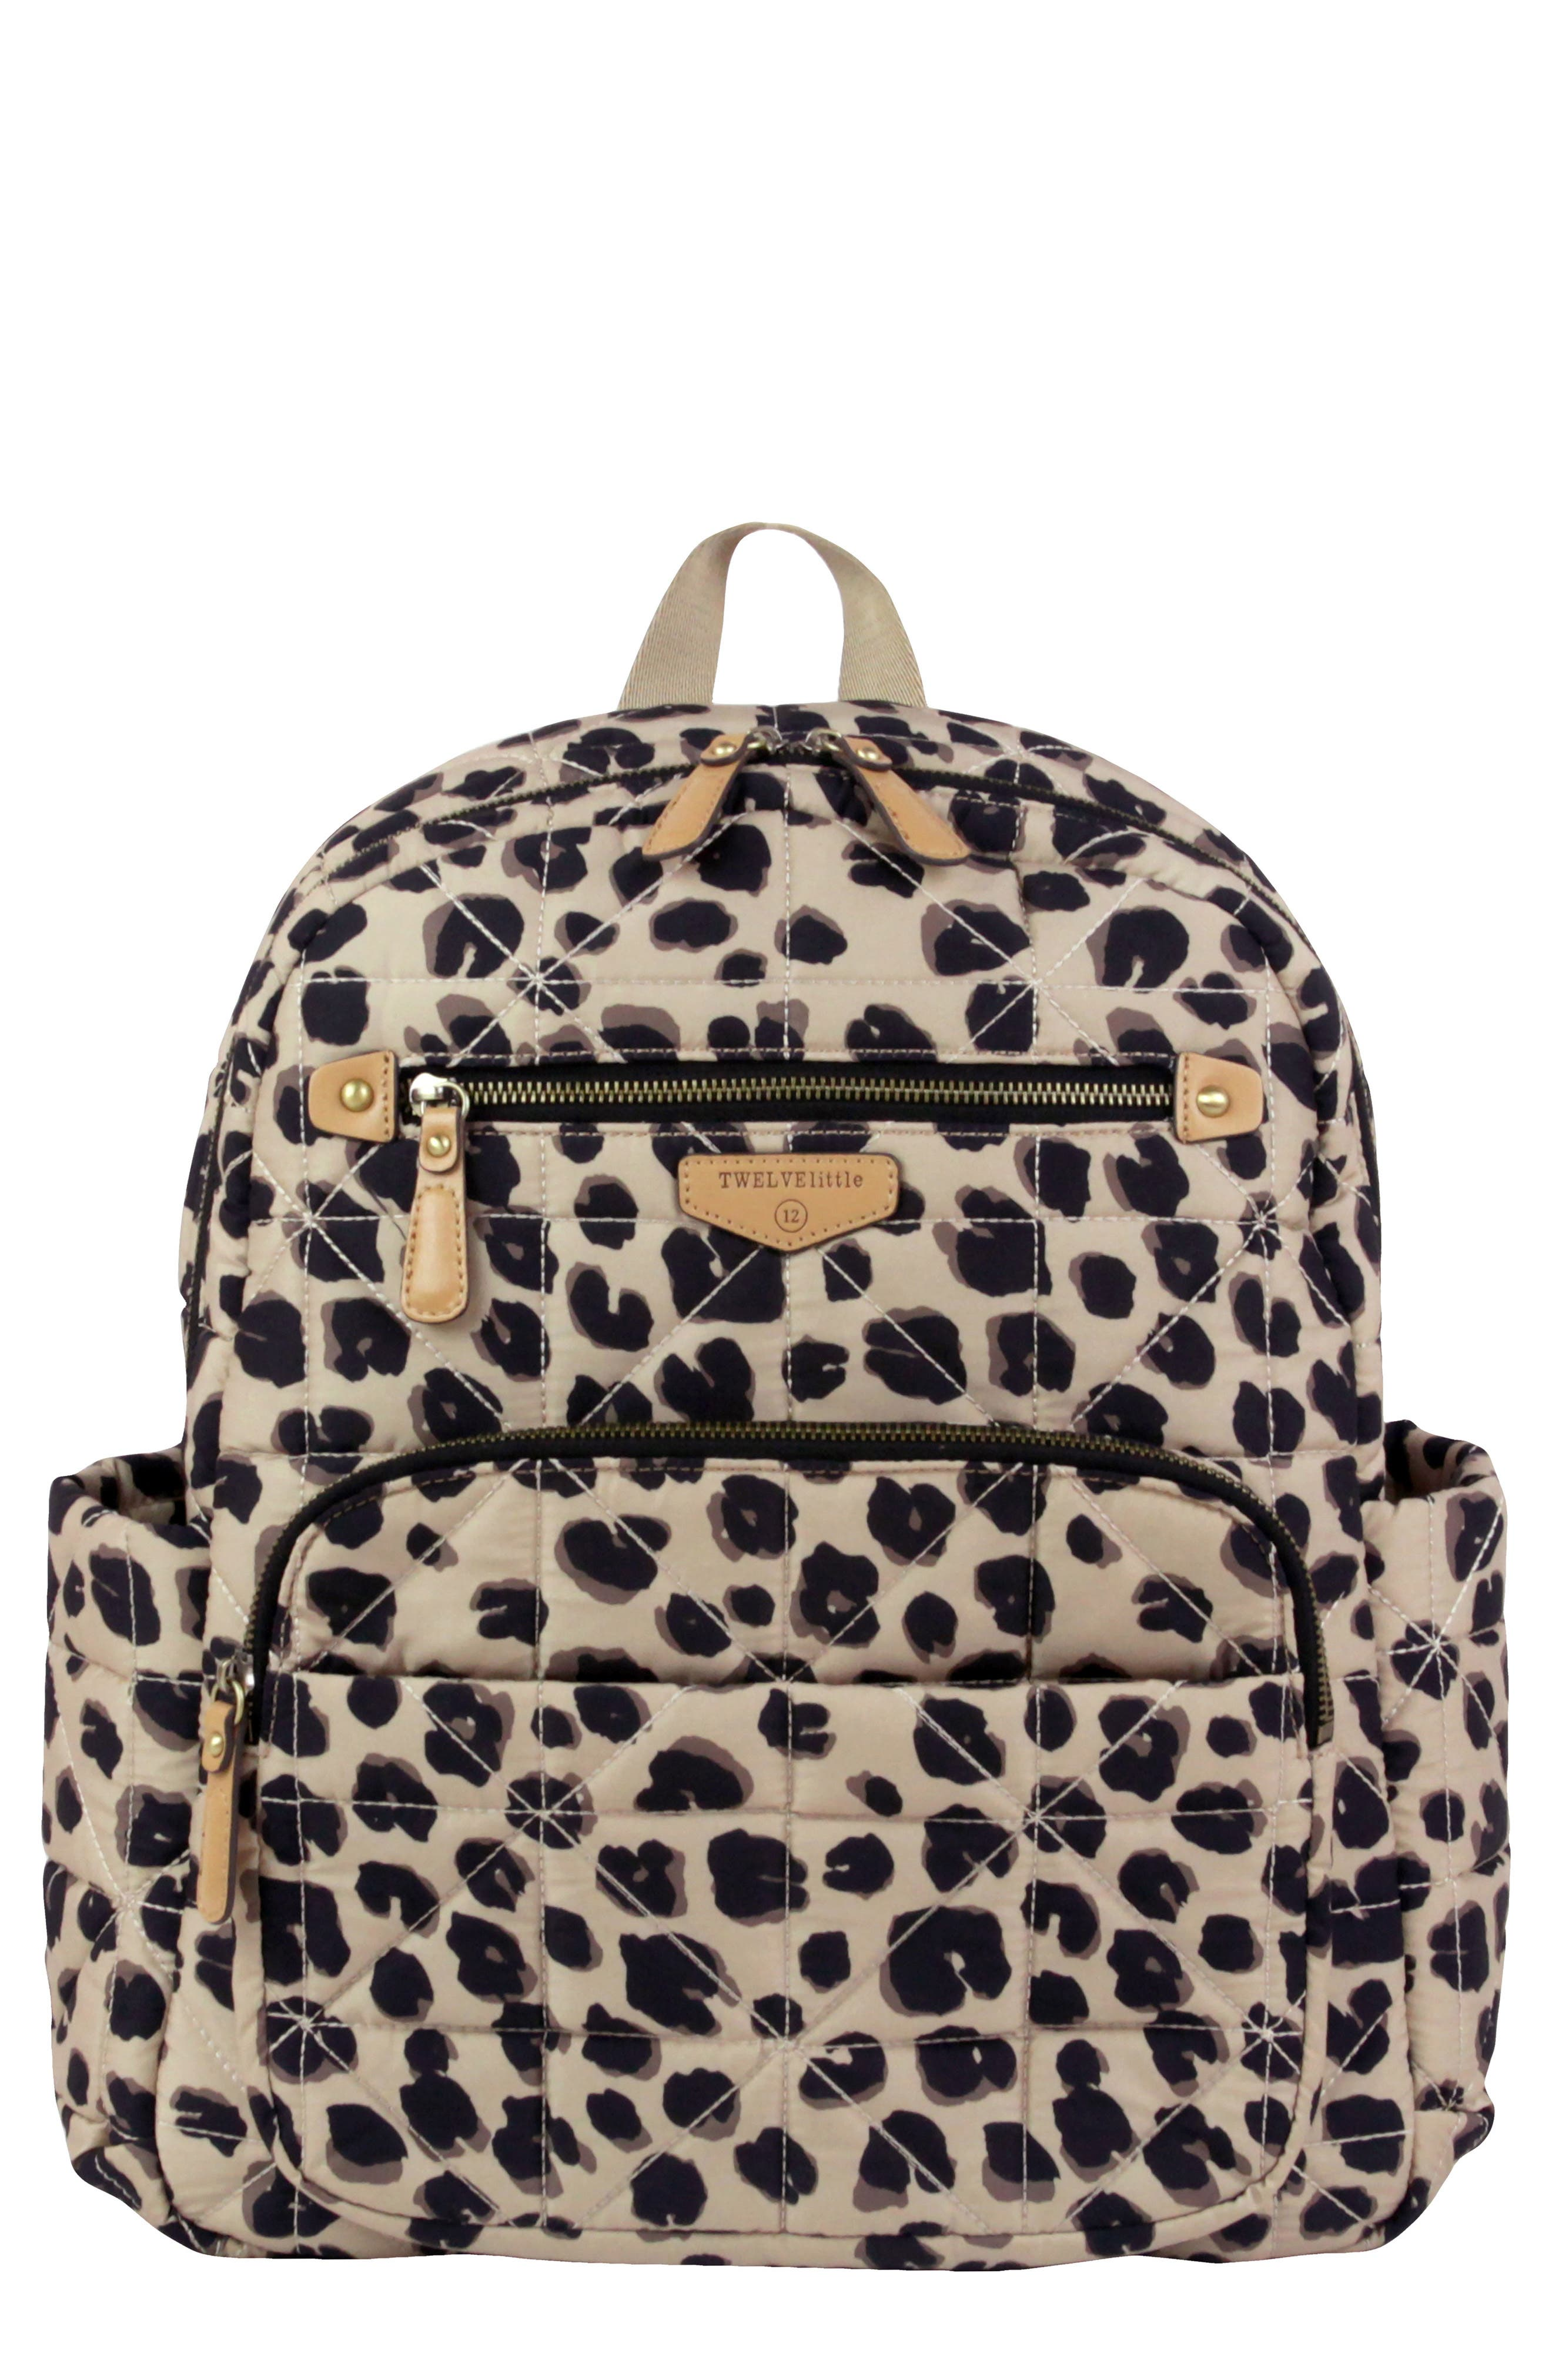 TWELVELITTLE, Quilted Water Resistant Nylon Diaper Backpack, Main thumbnail 1, color, LEOPARD PRINT